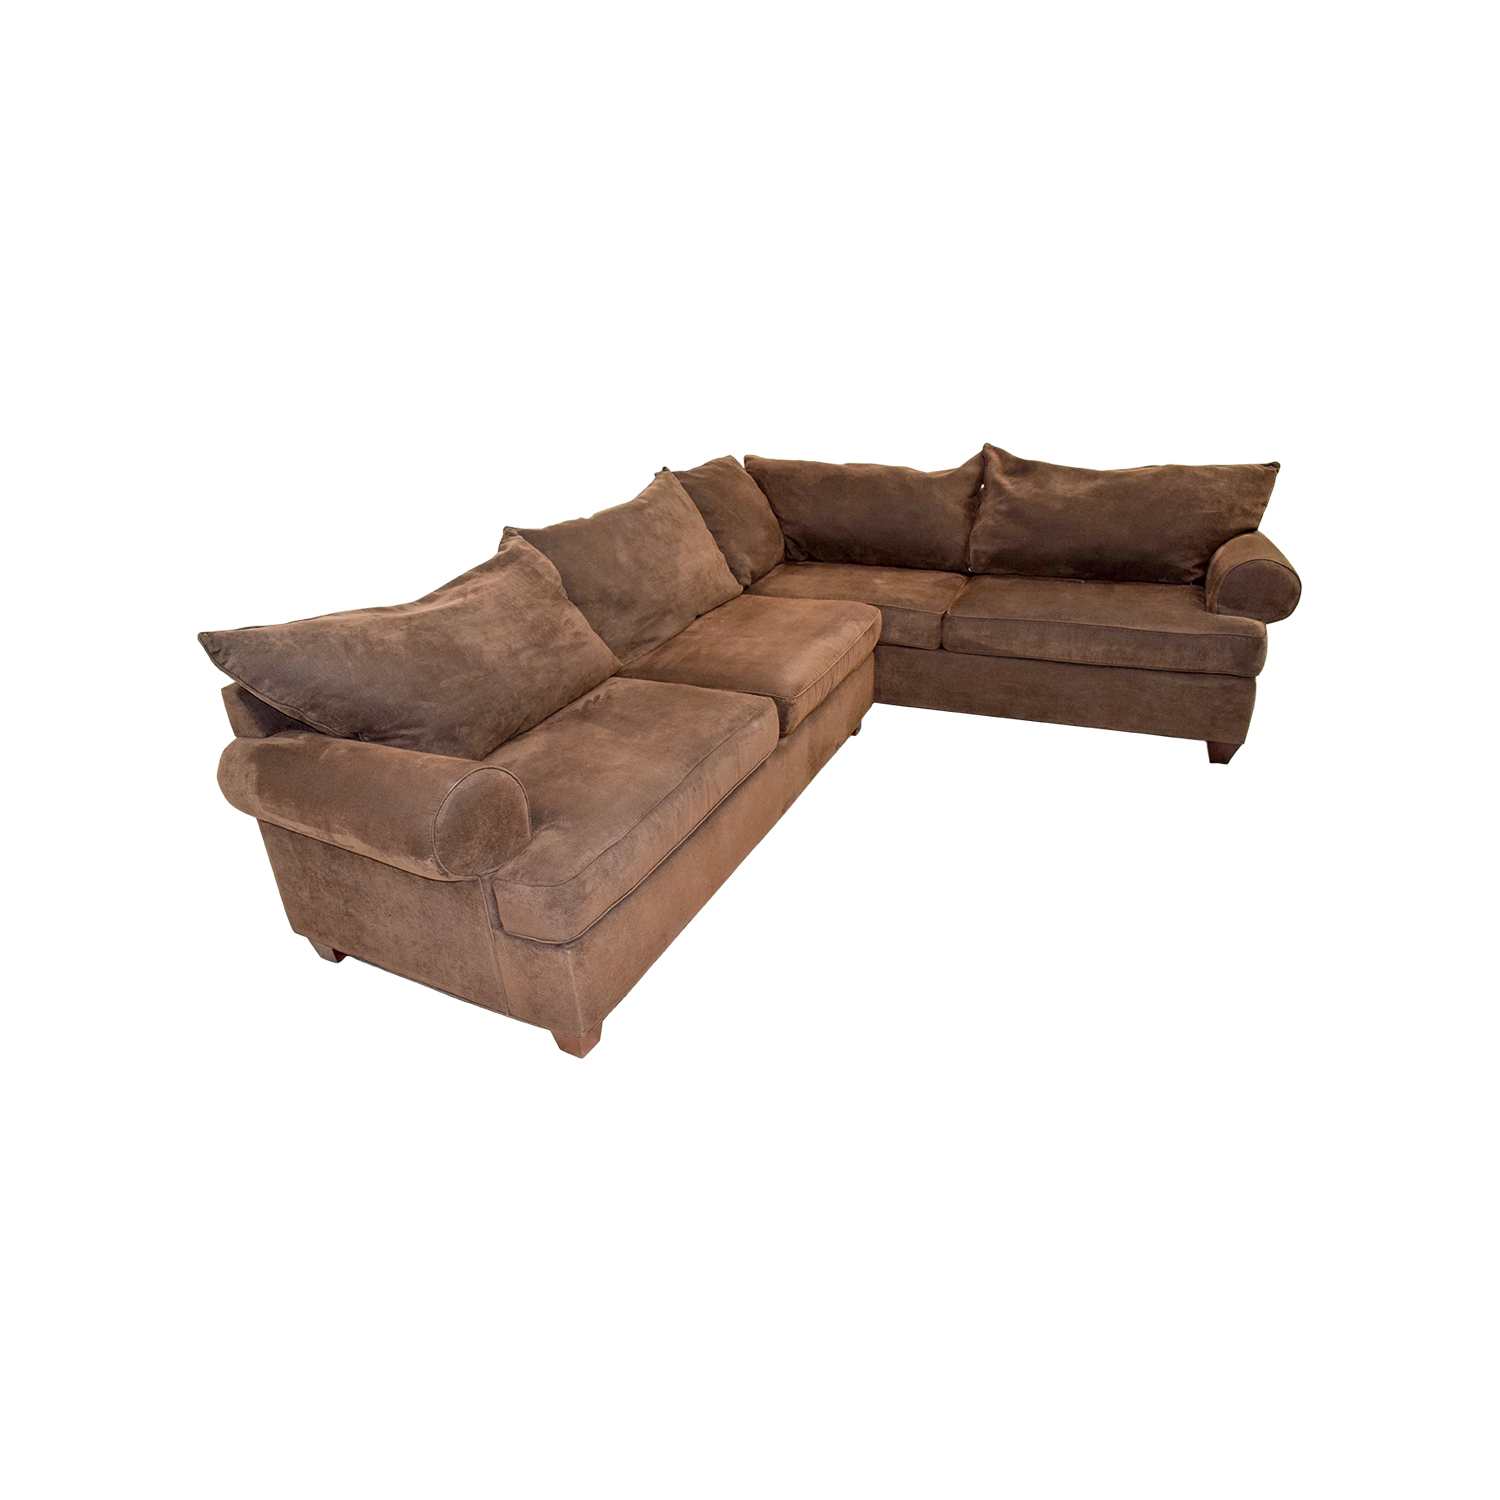 Brown Corduroy L Shaped Sectional Couch